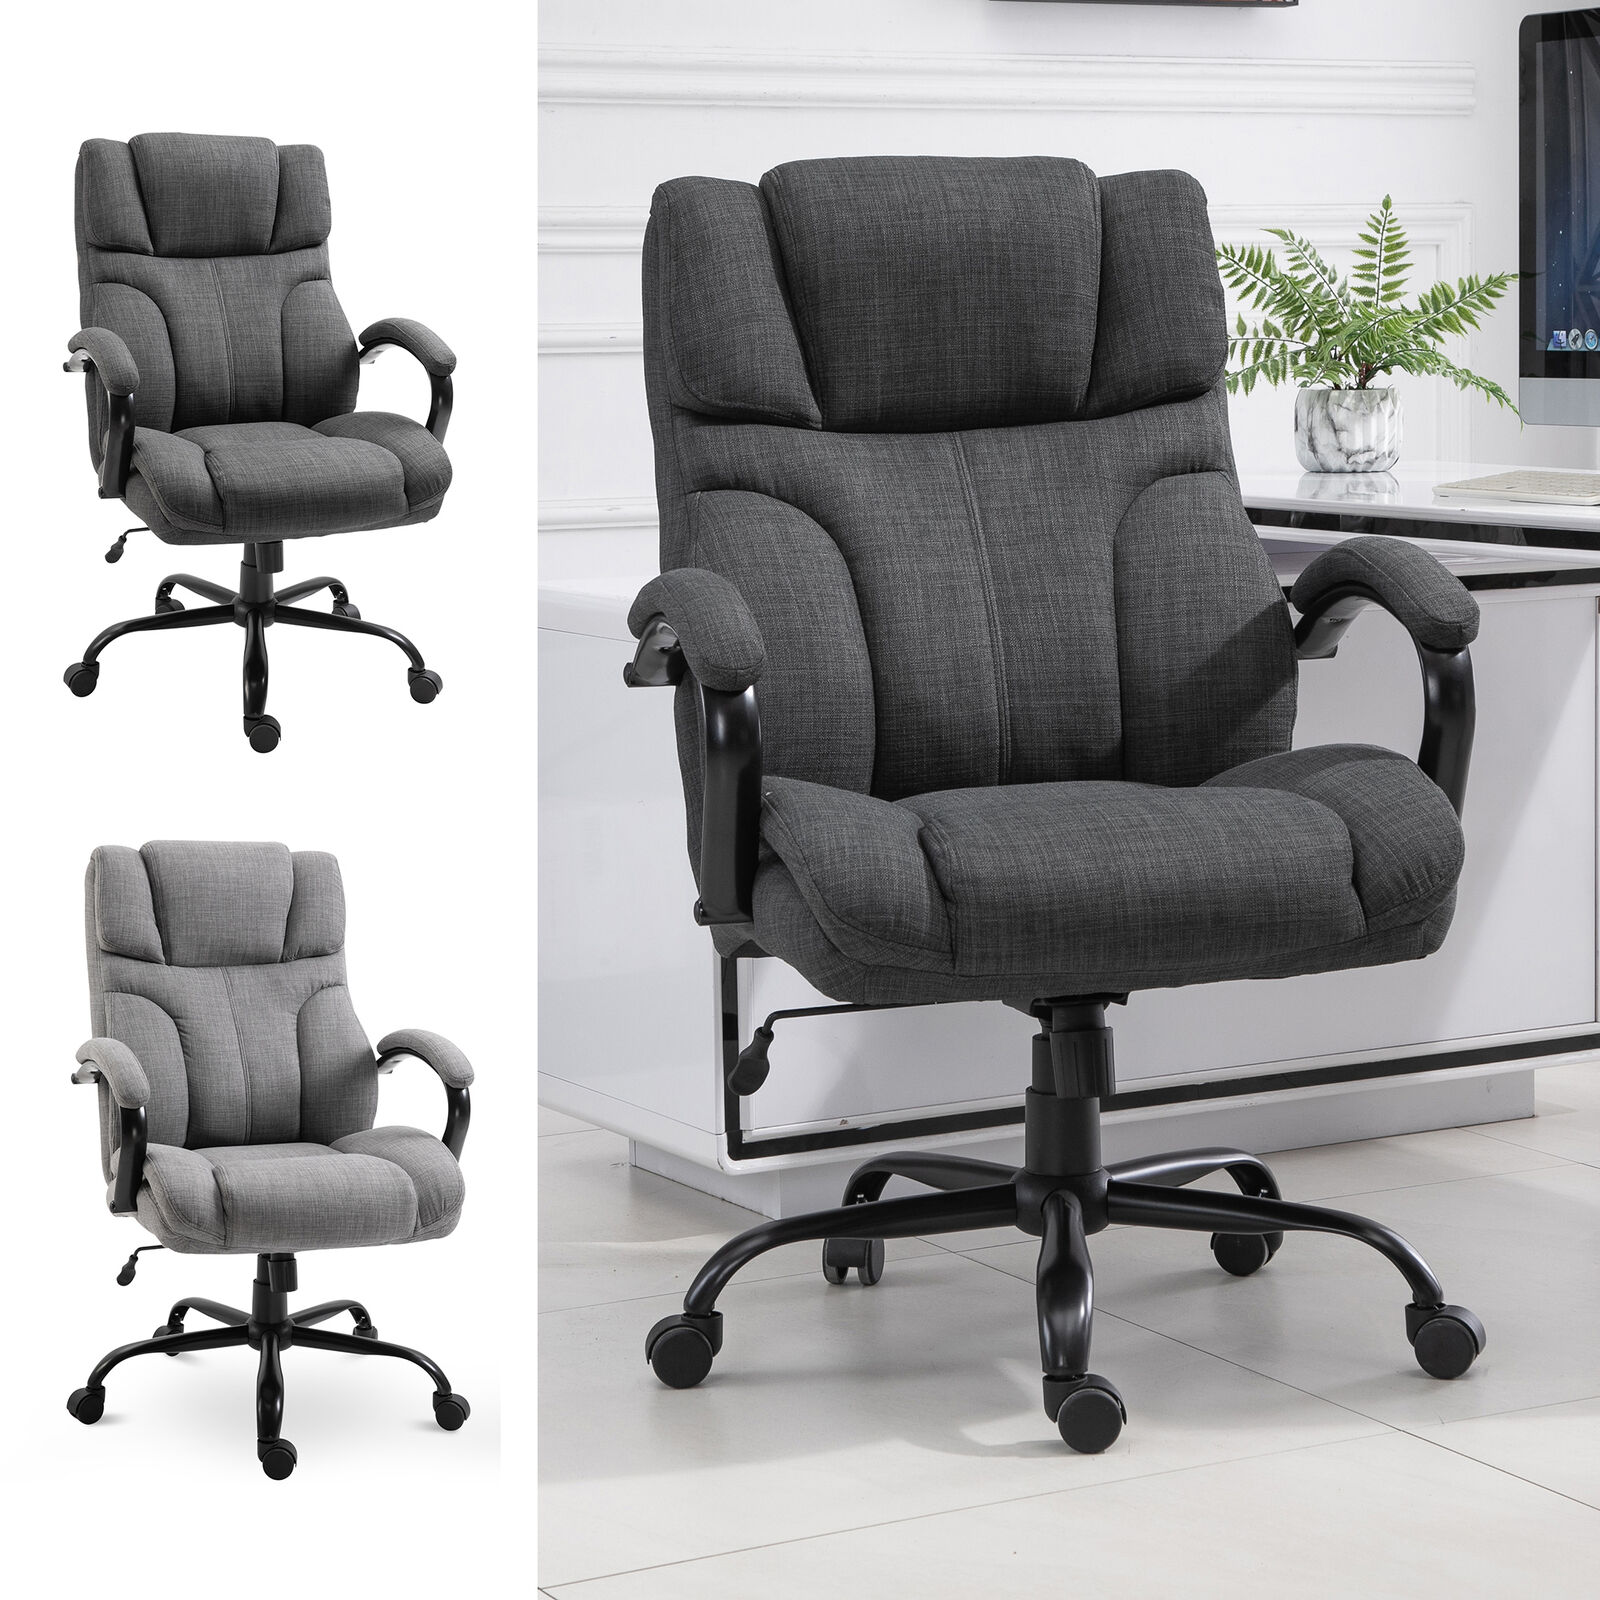 Vinsetto Ergonomic Office Chair with Wheel Linen Style ...